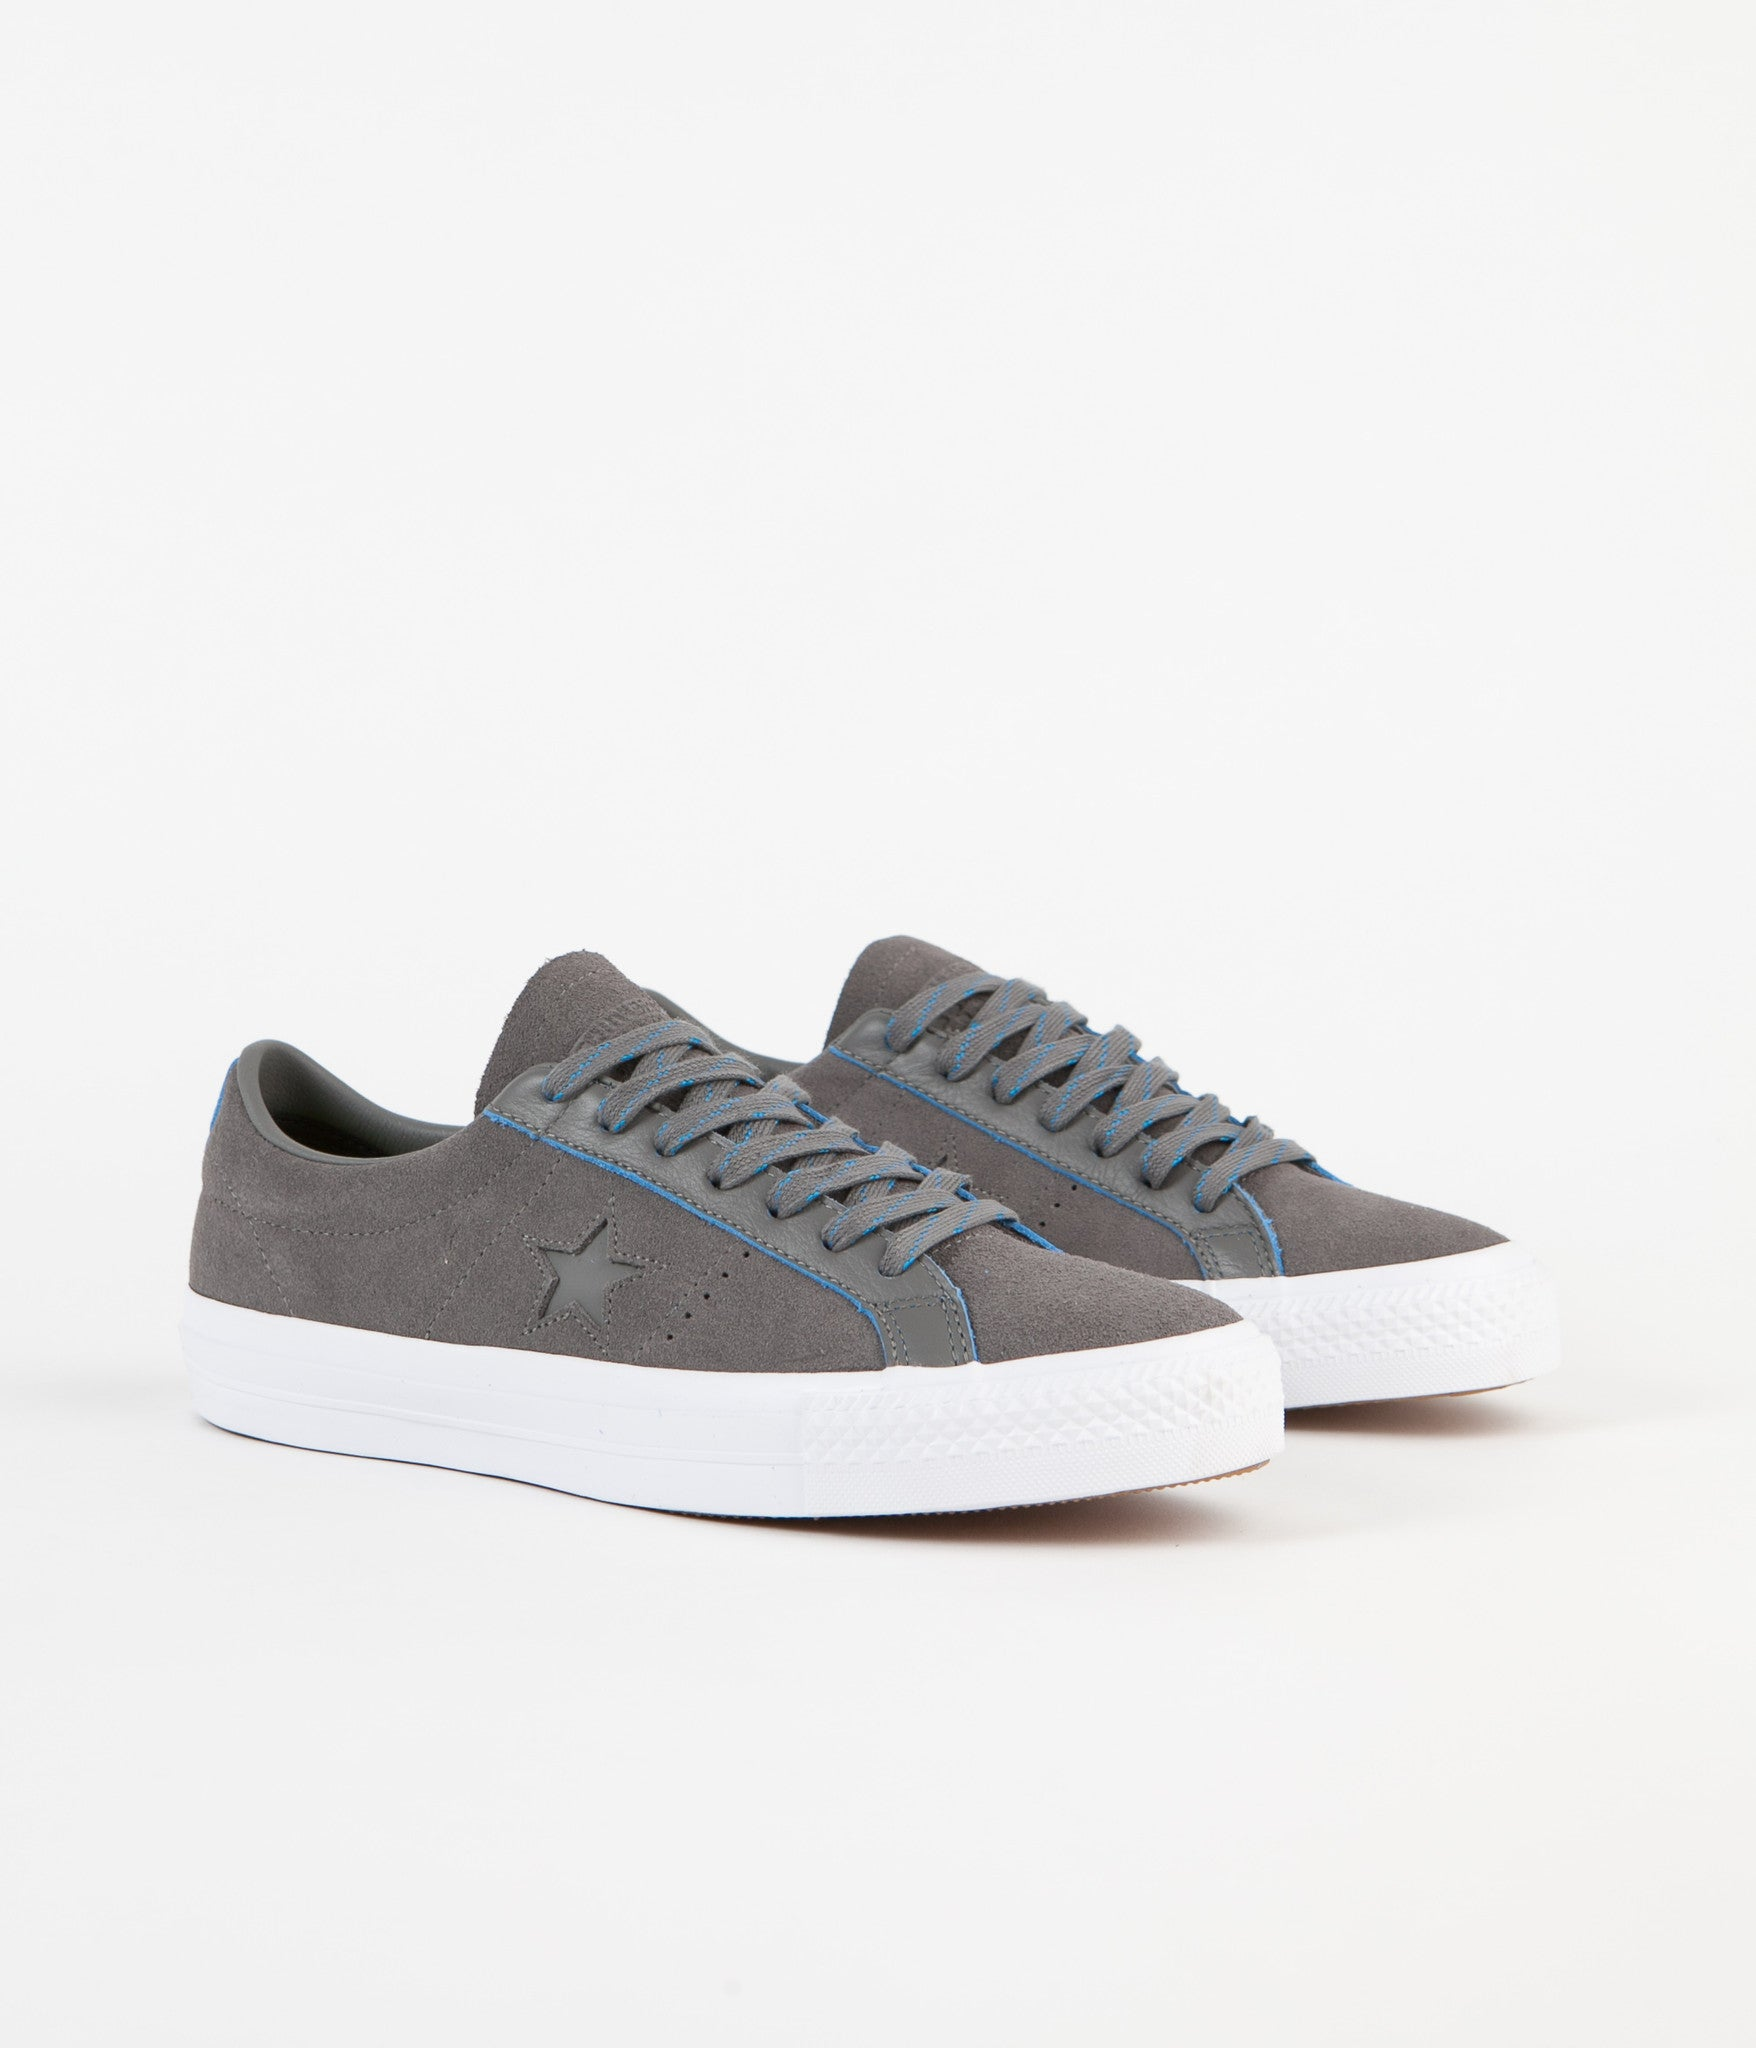 Chaussure Converse One Star Pro Ox Charcoal Grey Soar White